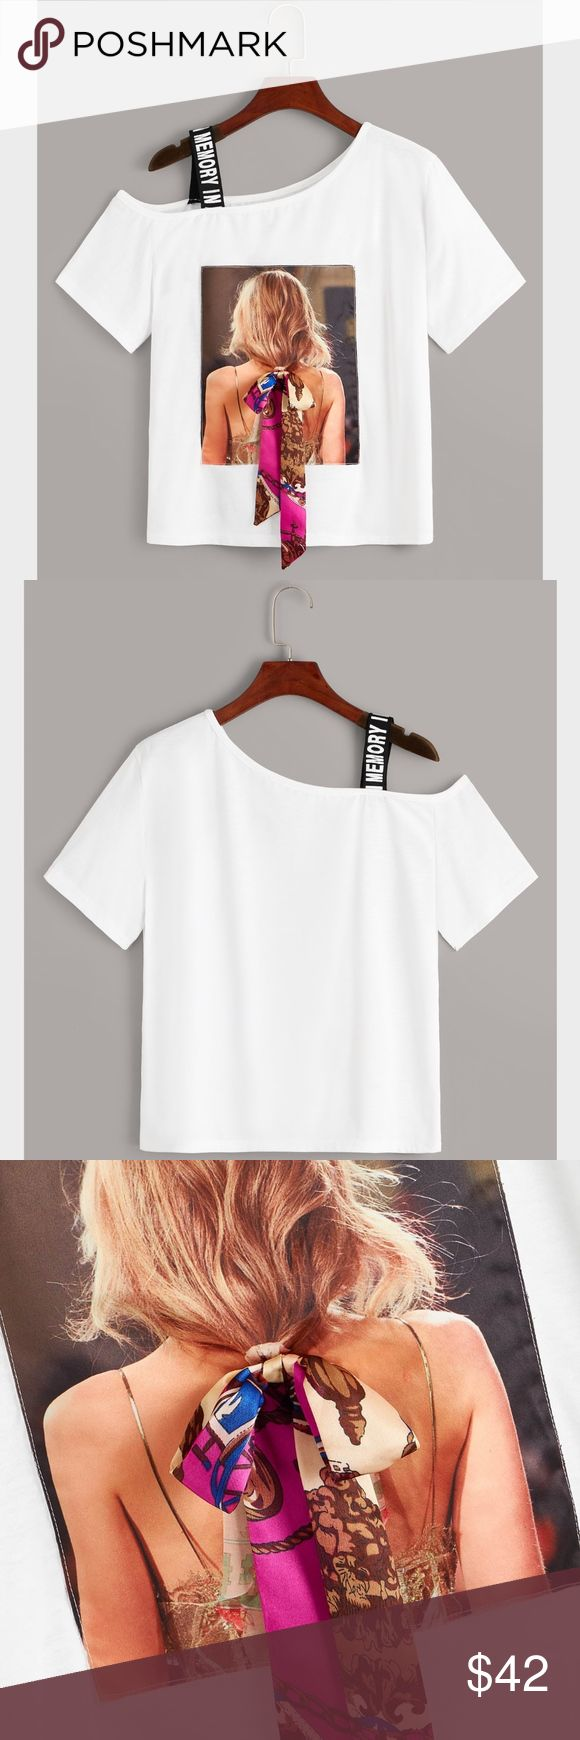 One Shoulder Hair Tie on Printed Tee Shirt Casual Printed One Shoulder Tee Ribbon/Tie Detail White 97% Polyester 3% Cotton Asymmetrical Neck with a St...